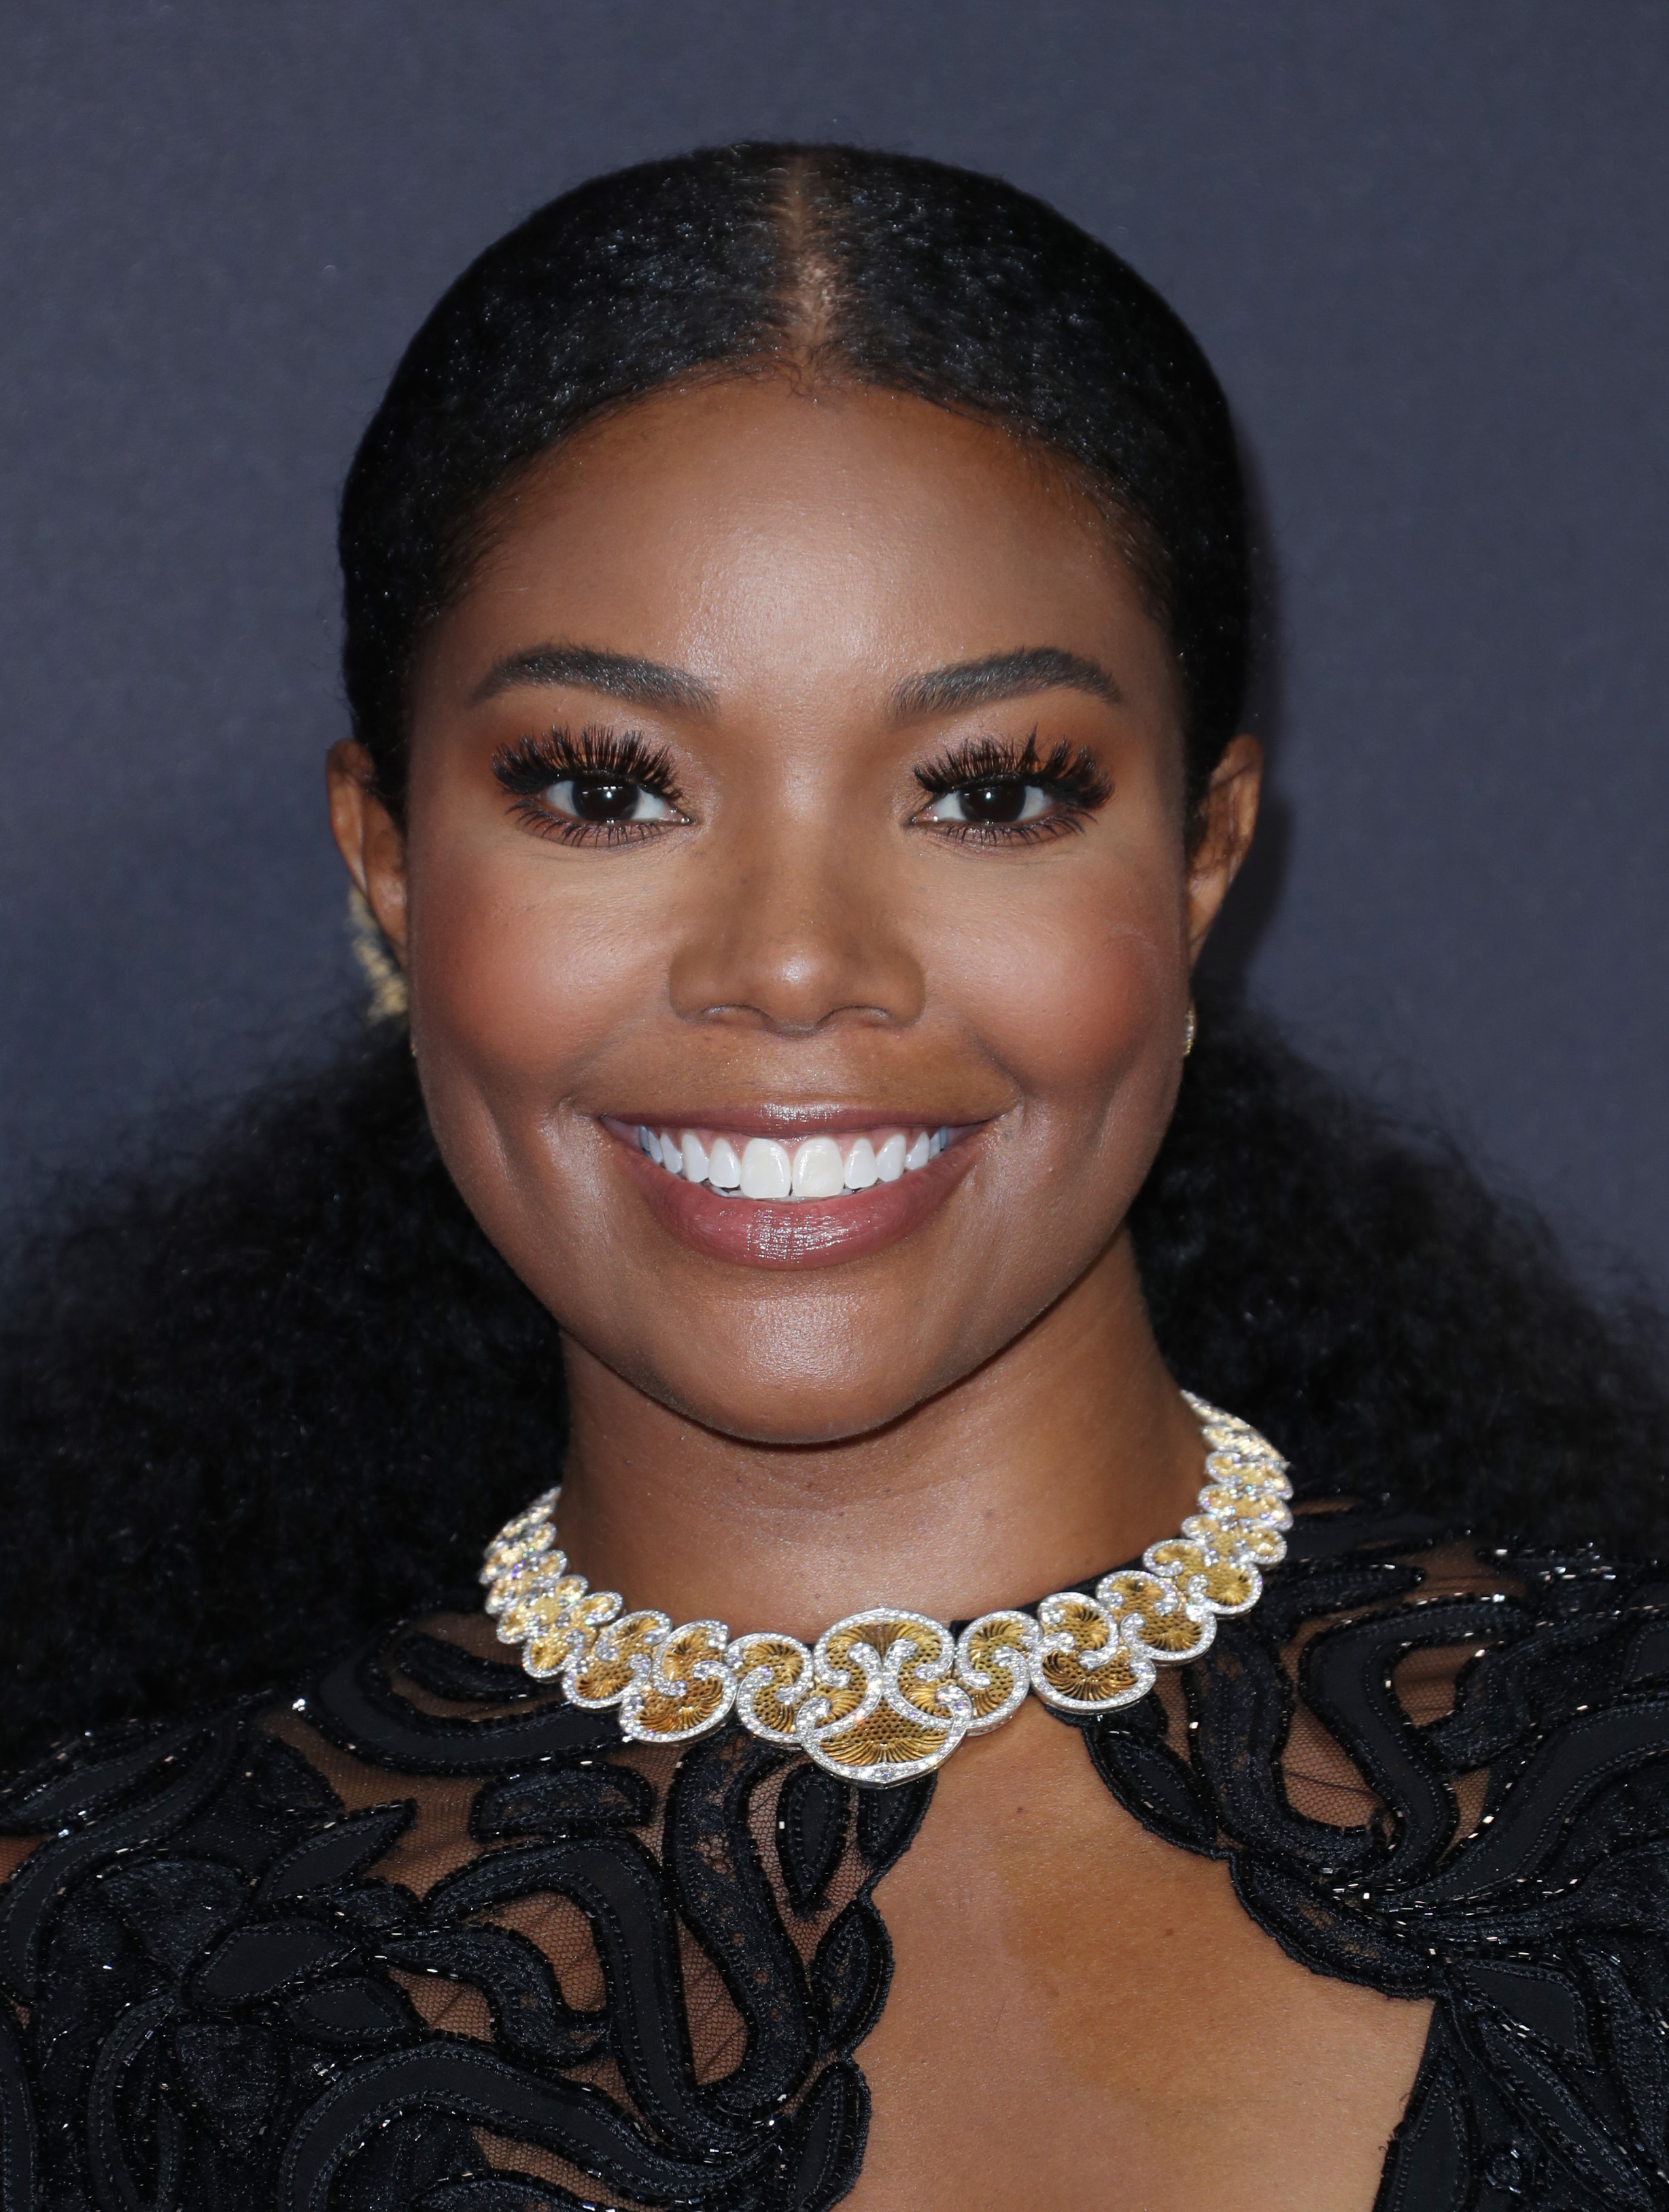 Gabrielle Union attends the 69th Primetime Emmy Awards in Los Angeles on Sept. 17, 2017.